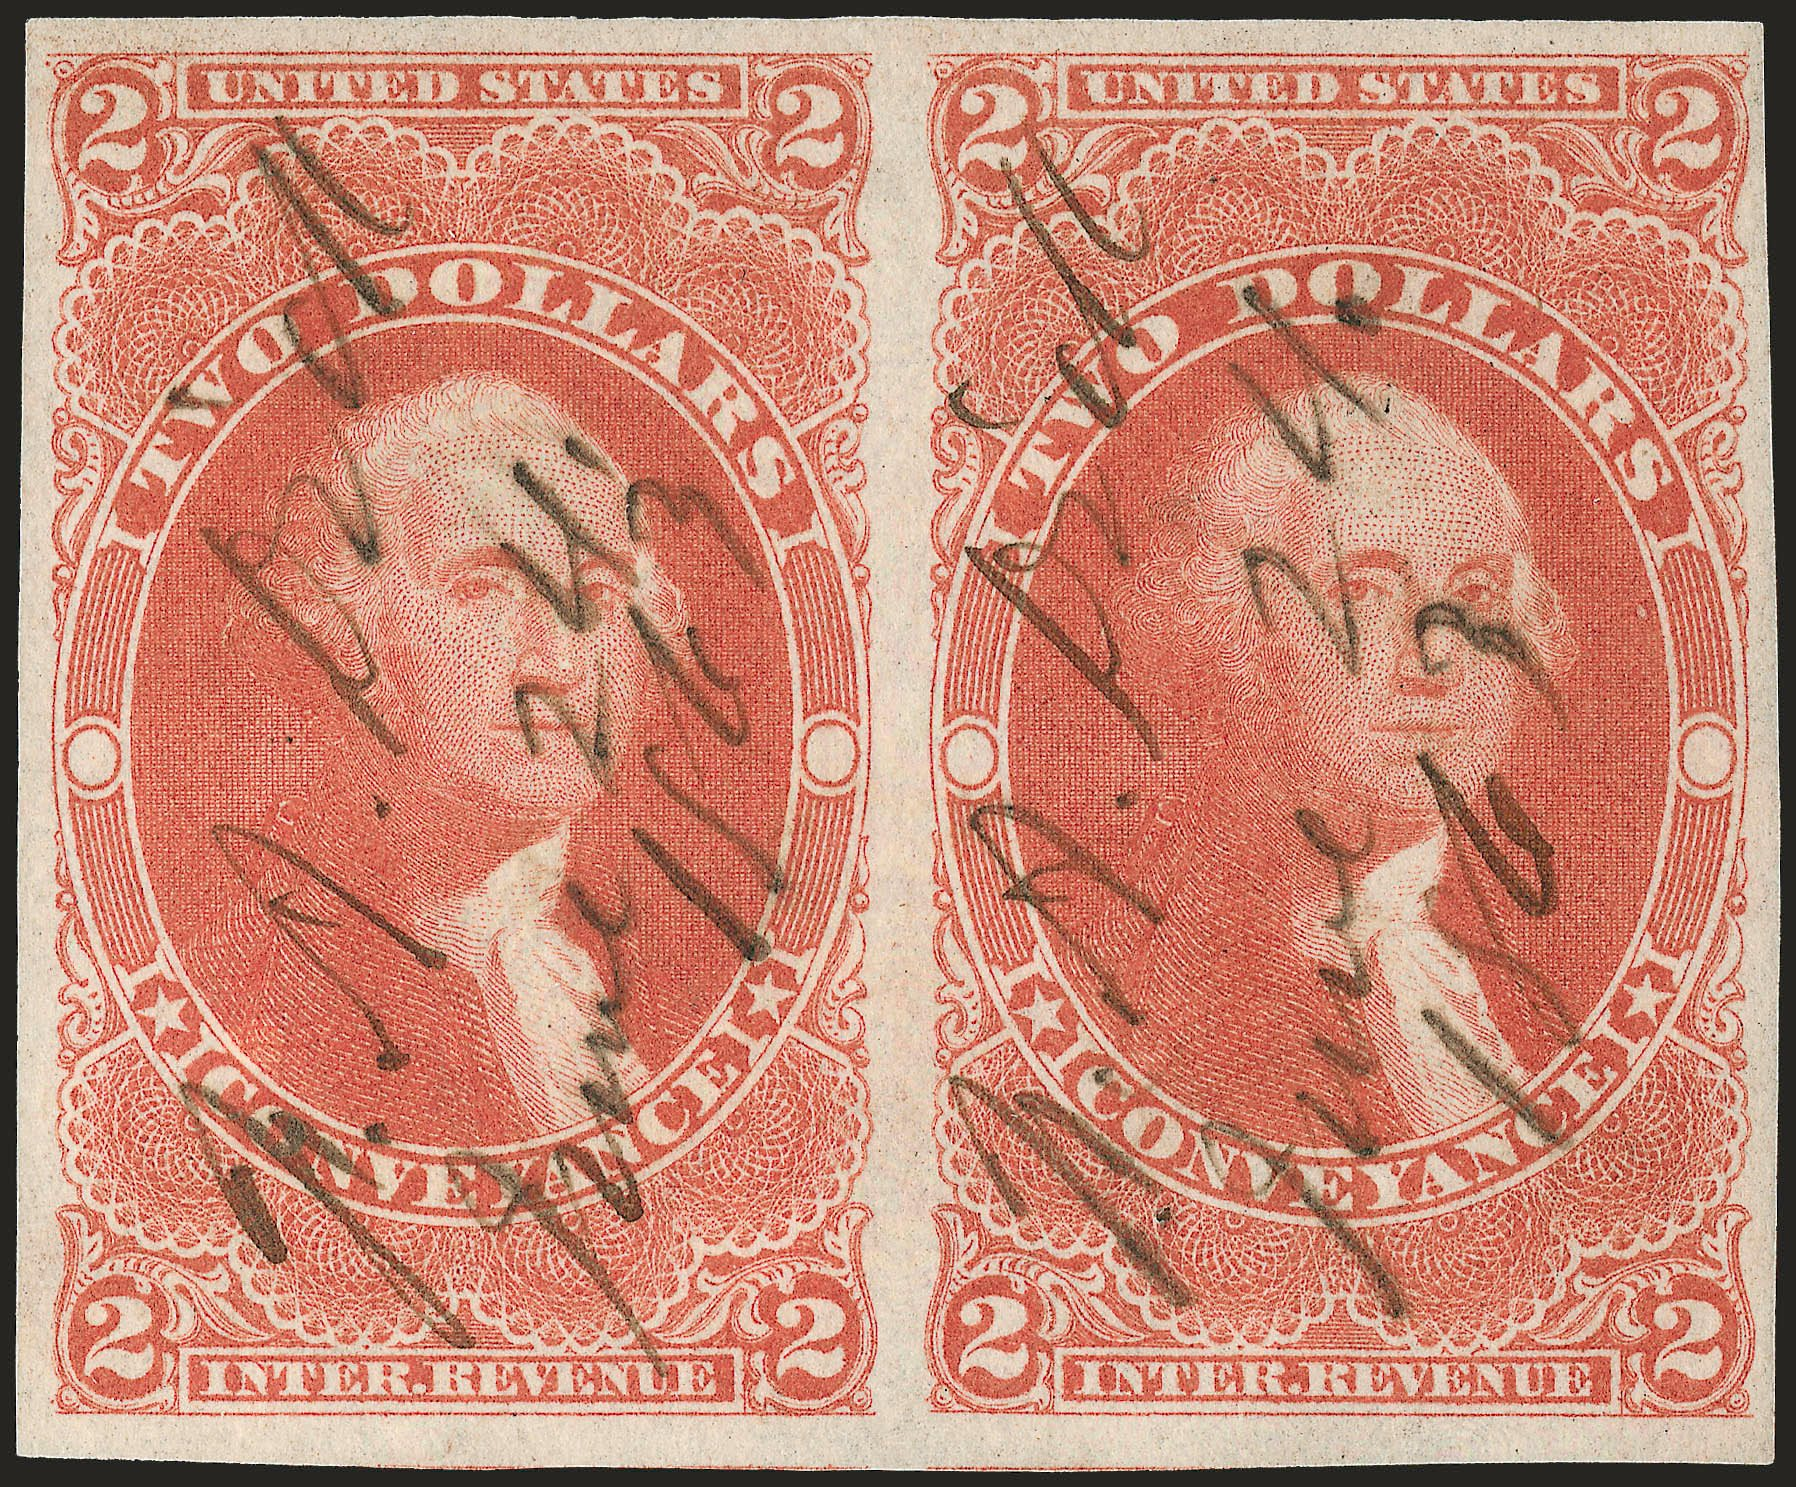 Costs of US Stamps Scott #R81 - 1862 US$2.00 Revenue Conveyance. Robert Siegel Auction Galleries, Dec 2008, Sale 967, Lot 5235